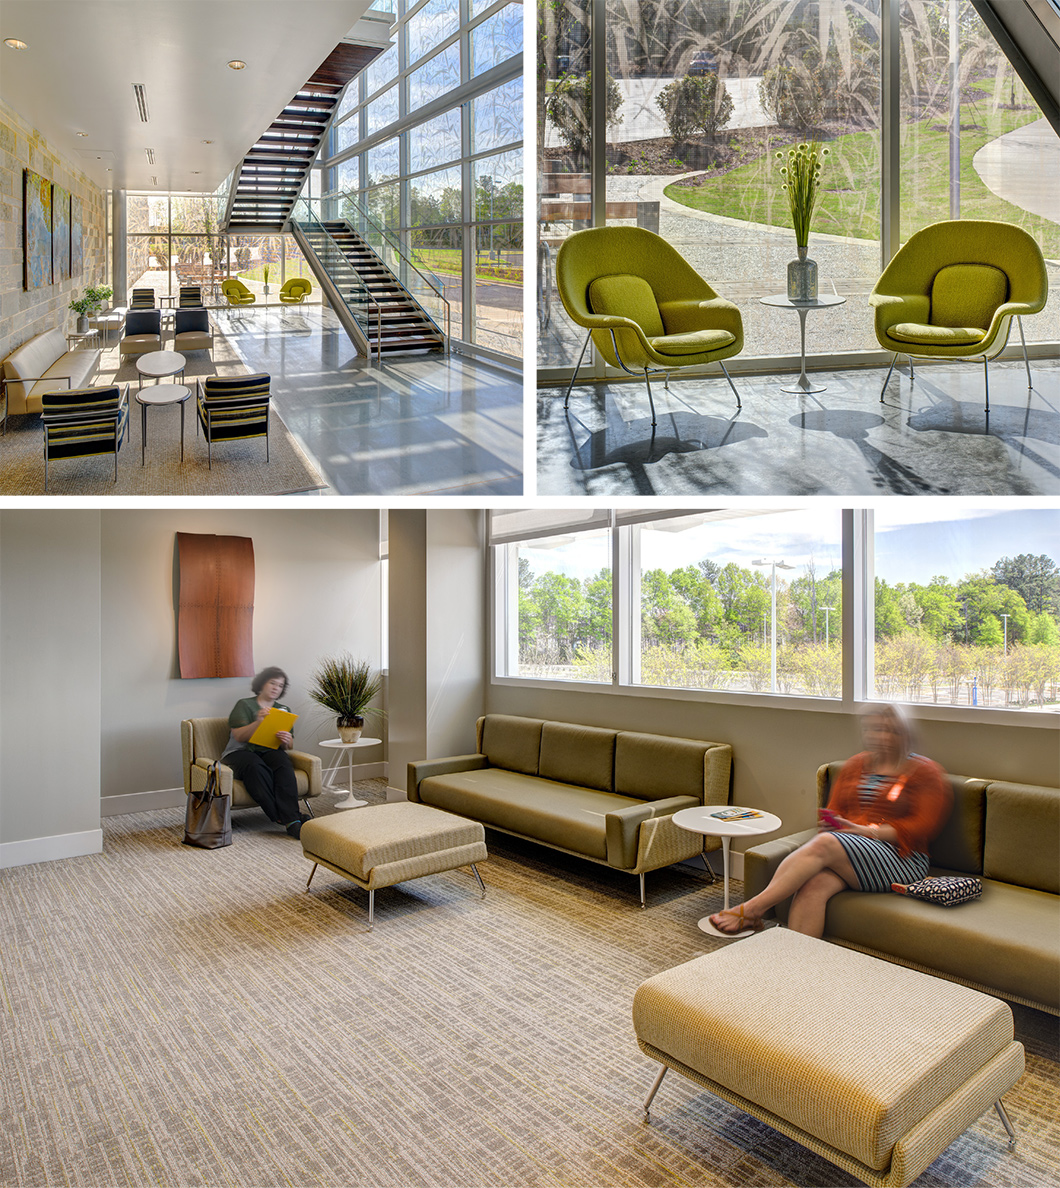 Modern Architecture Greenville Sc st. francis cancer center | workplace research | resources | knoll